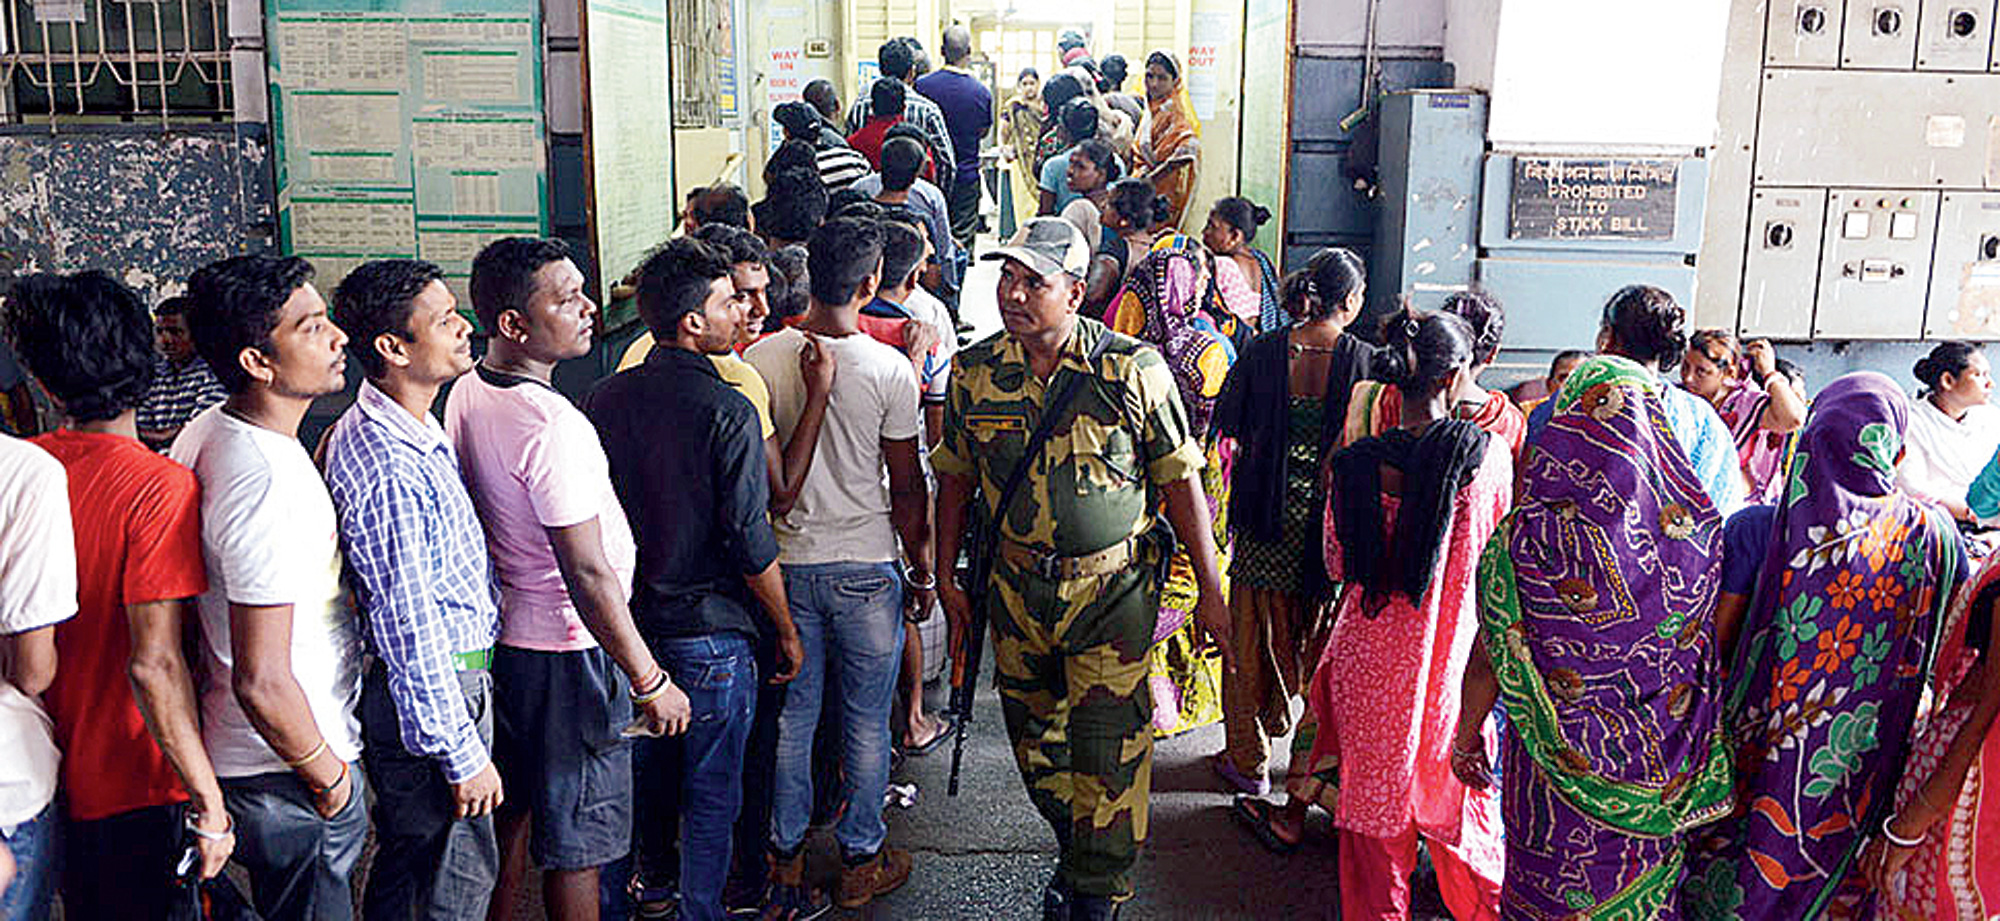 Queues outside a polling booth in West Bengal.